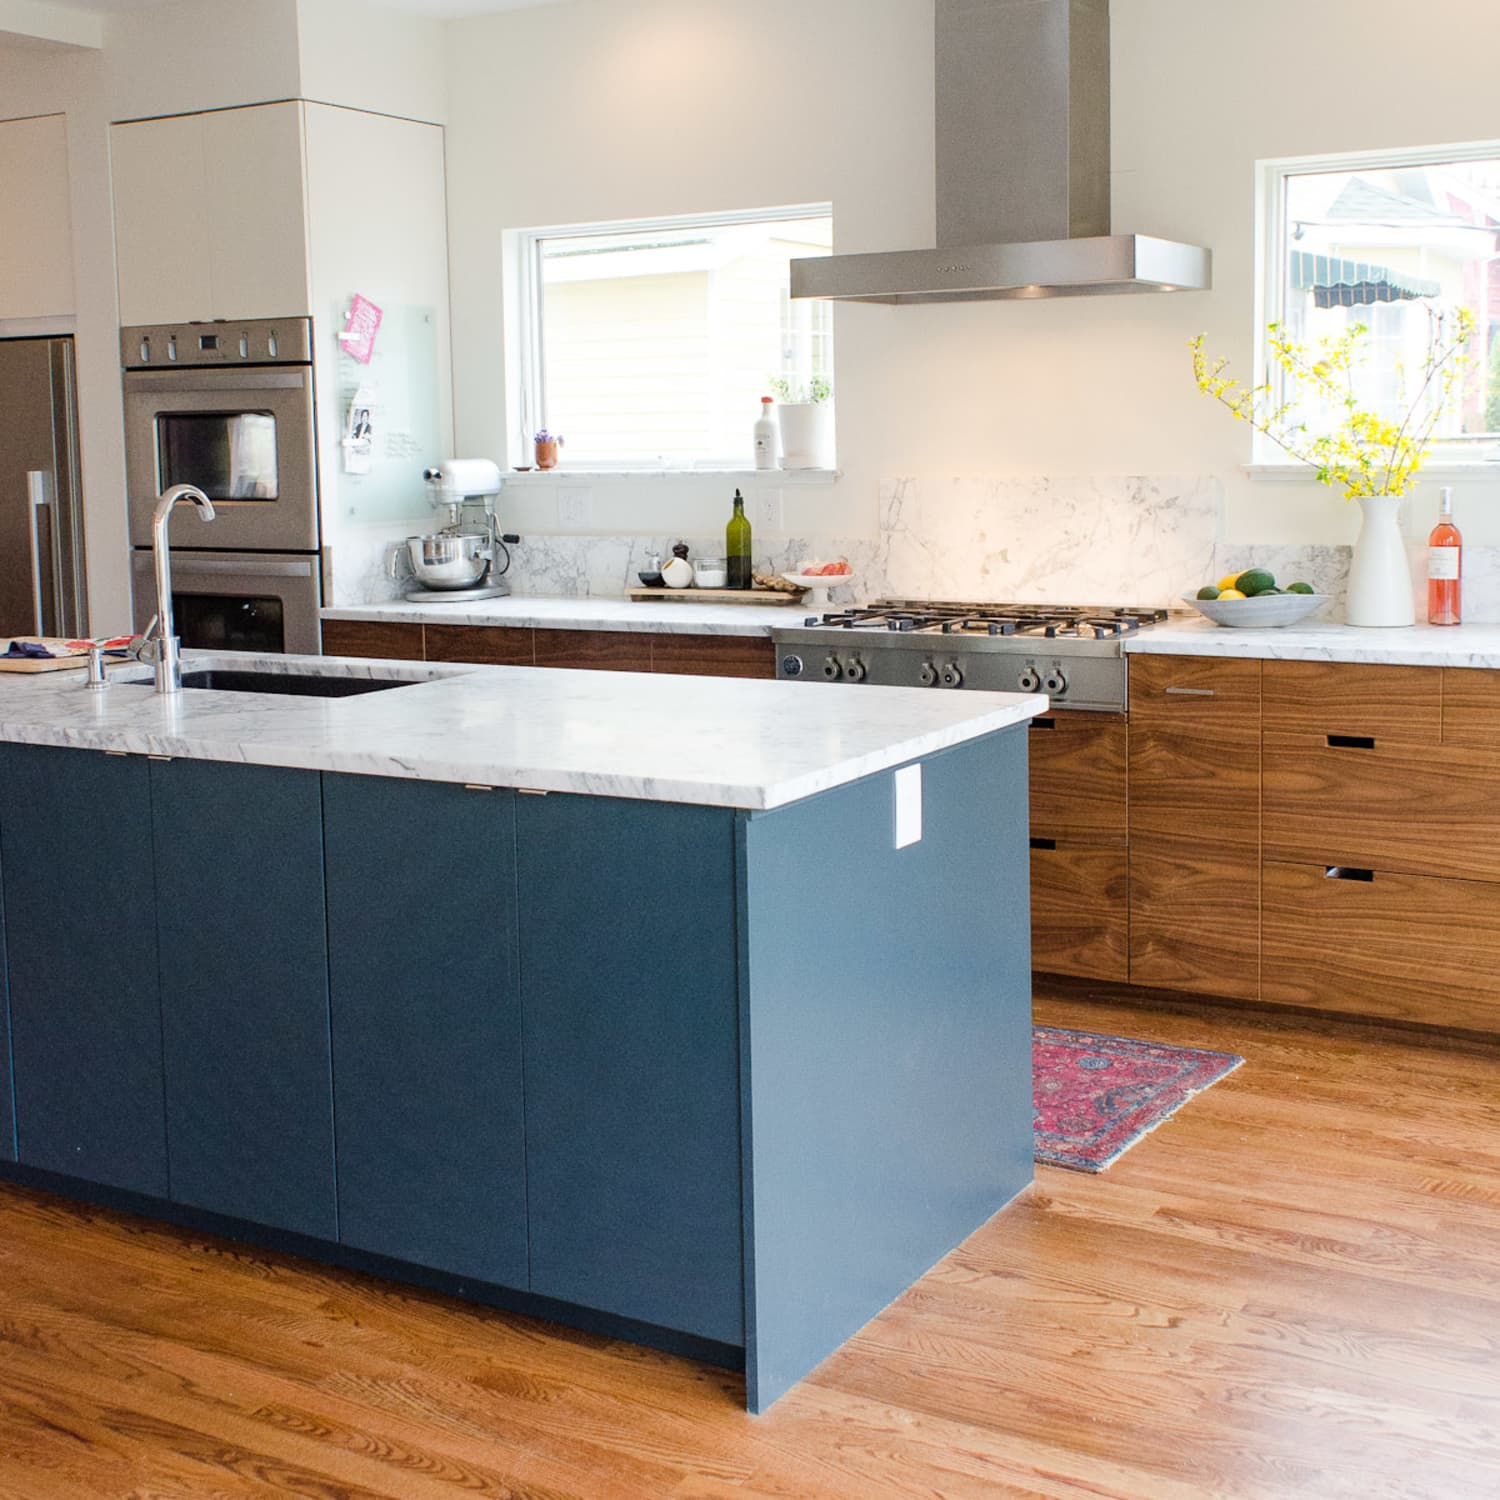 Ikea Kitchen Review Remodel Cost Cabinets Quality Kitchn,Best Places To Travel In The World In October